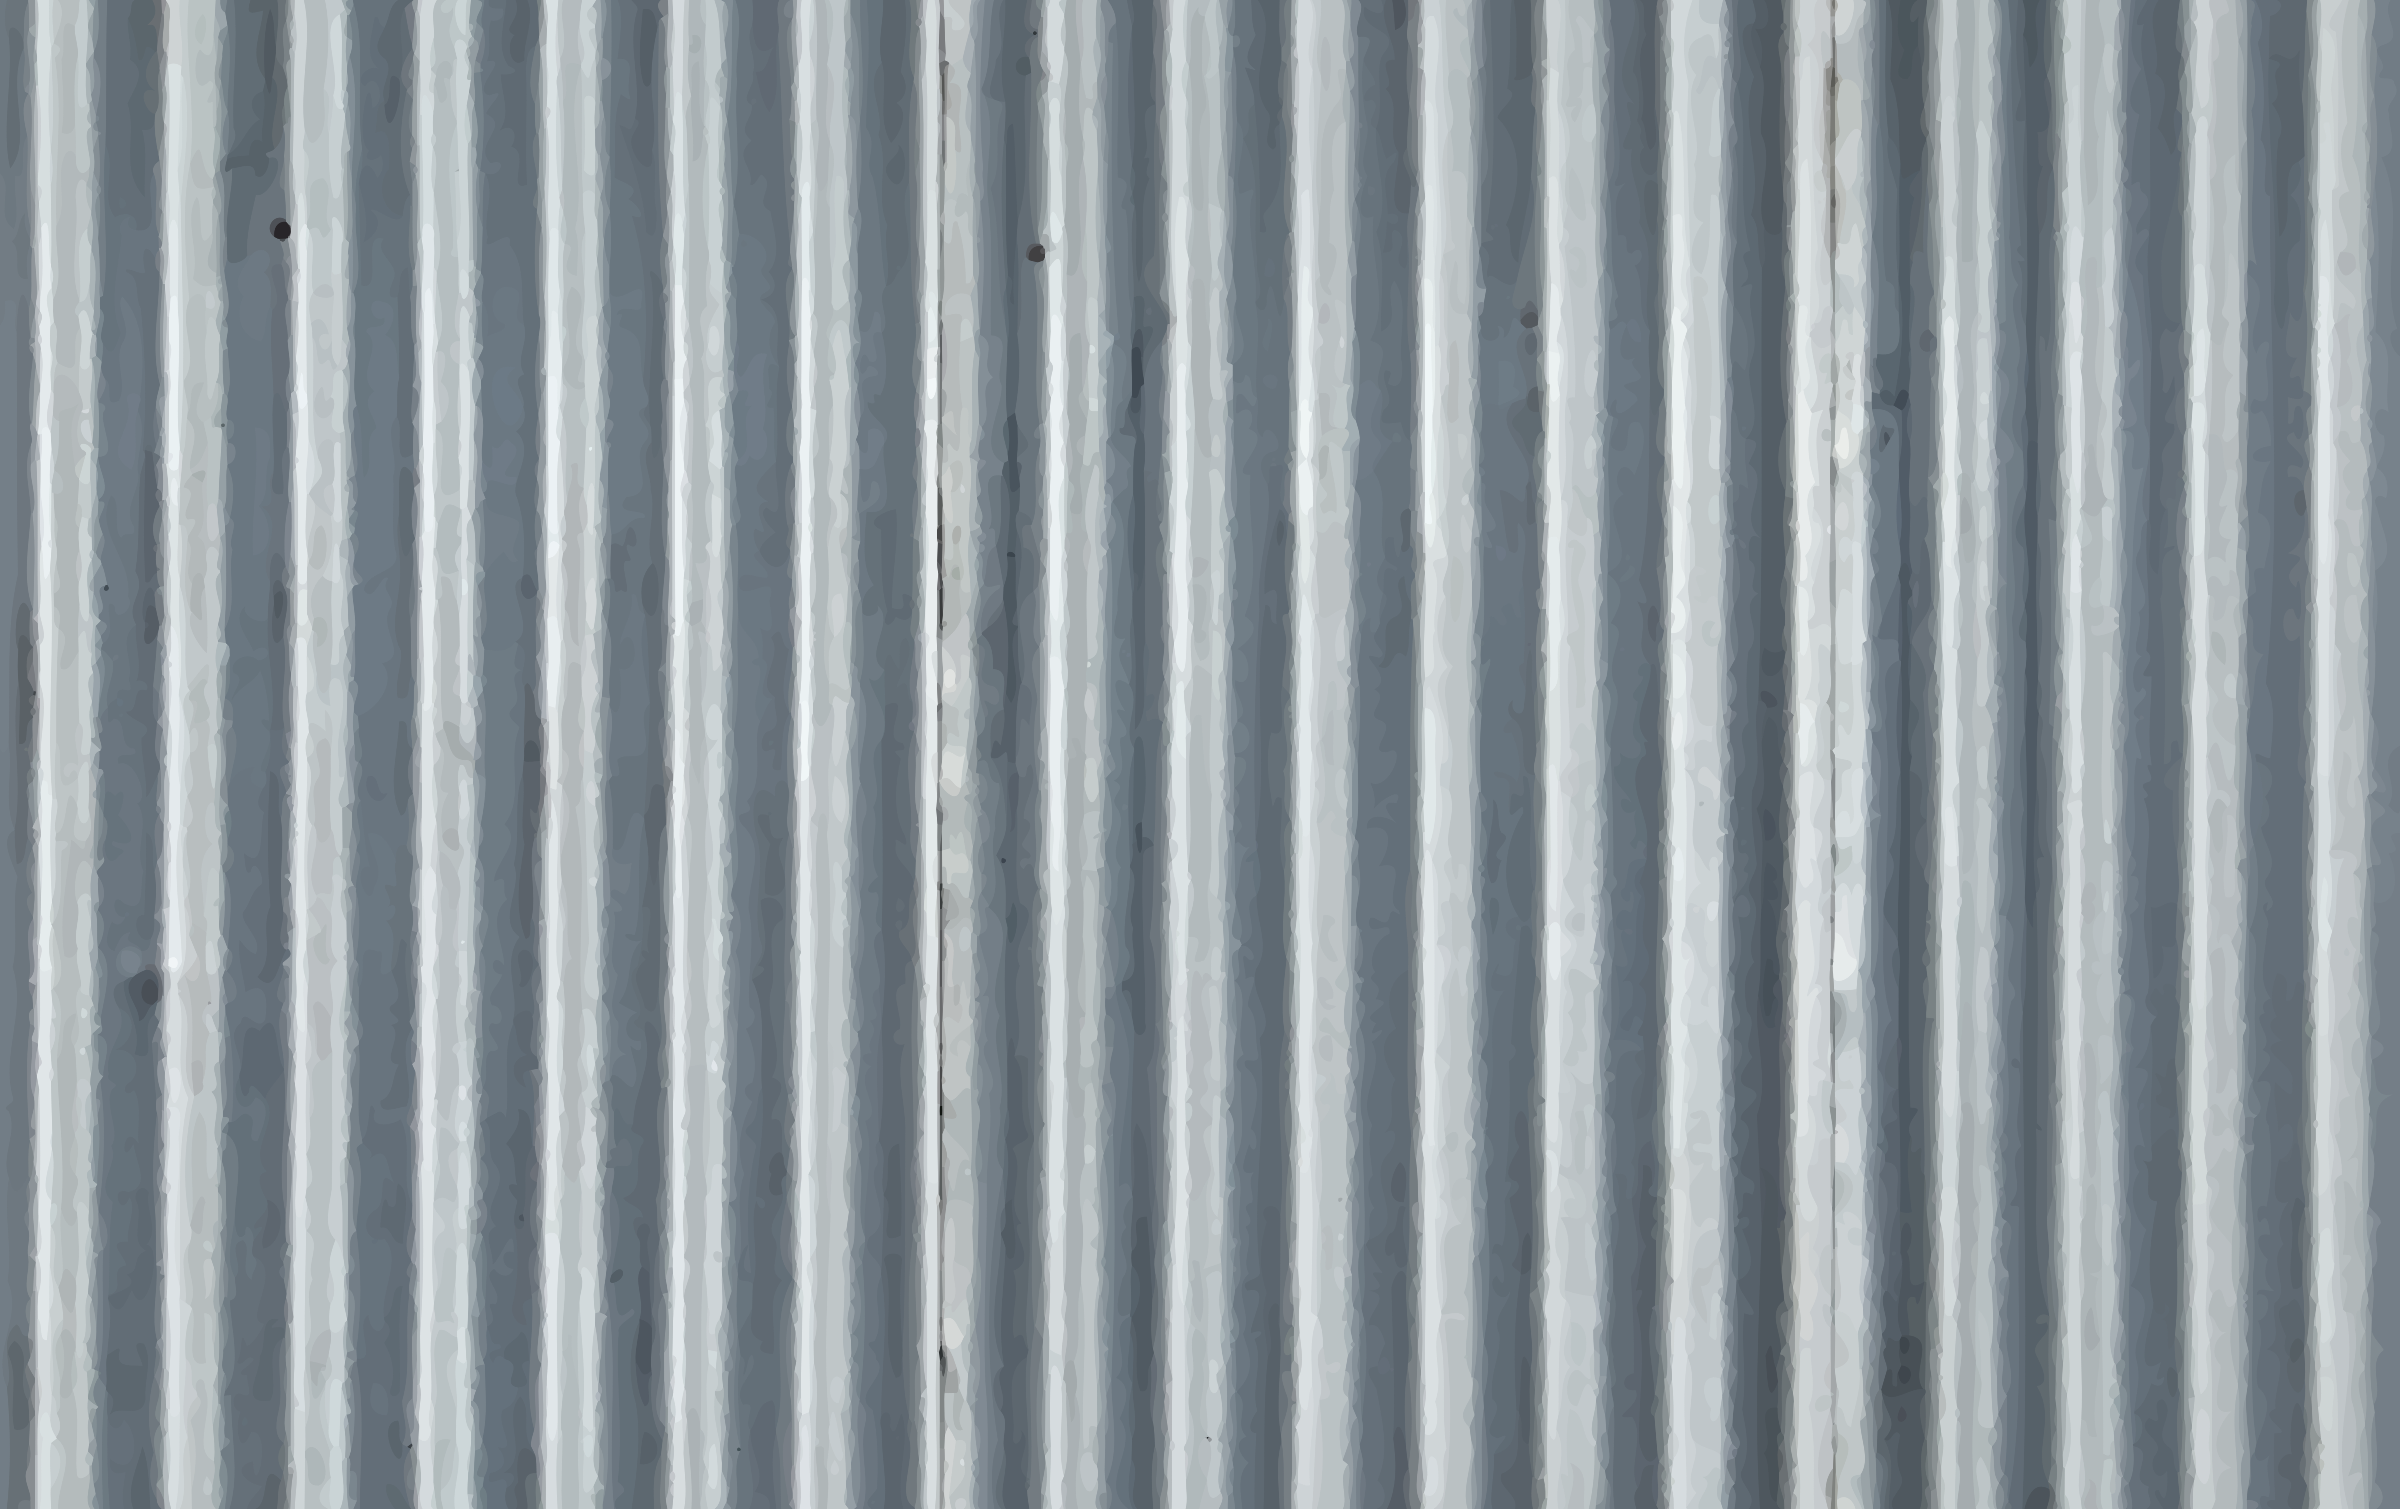 Corrugated metal 6 by Firkin